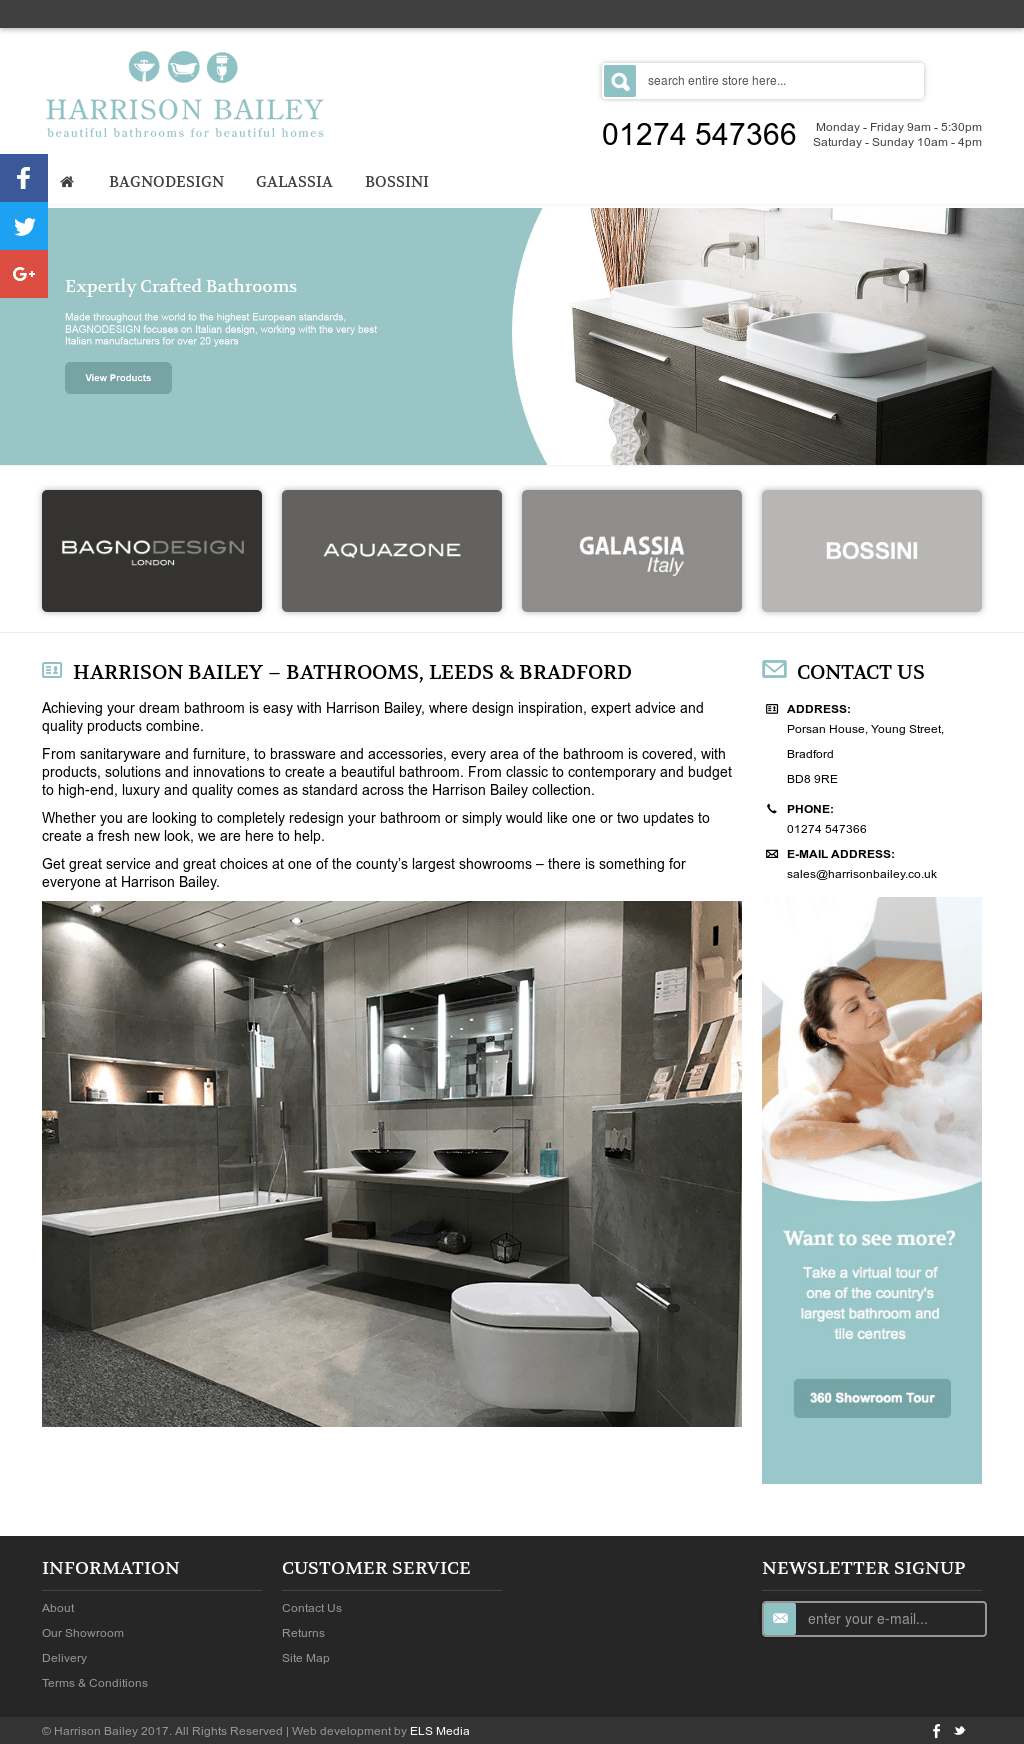 Bagno Design Bradford The Harrison Bailey Company Limited Competitors Revenue And